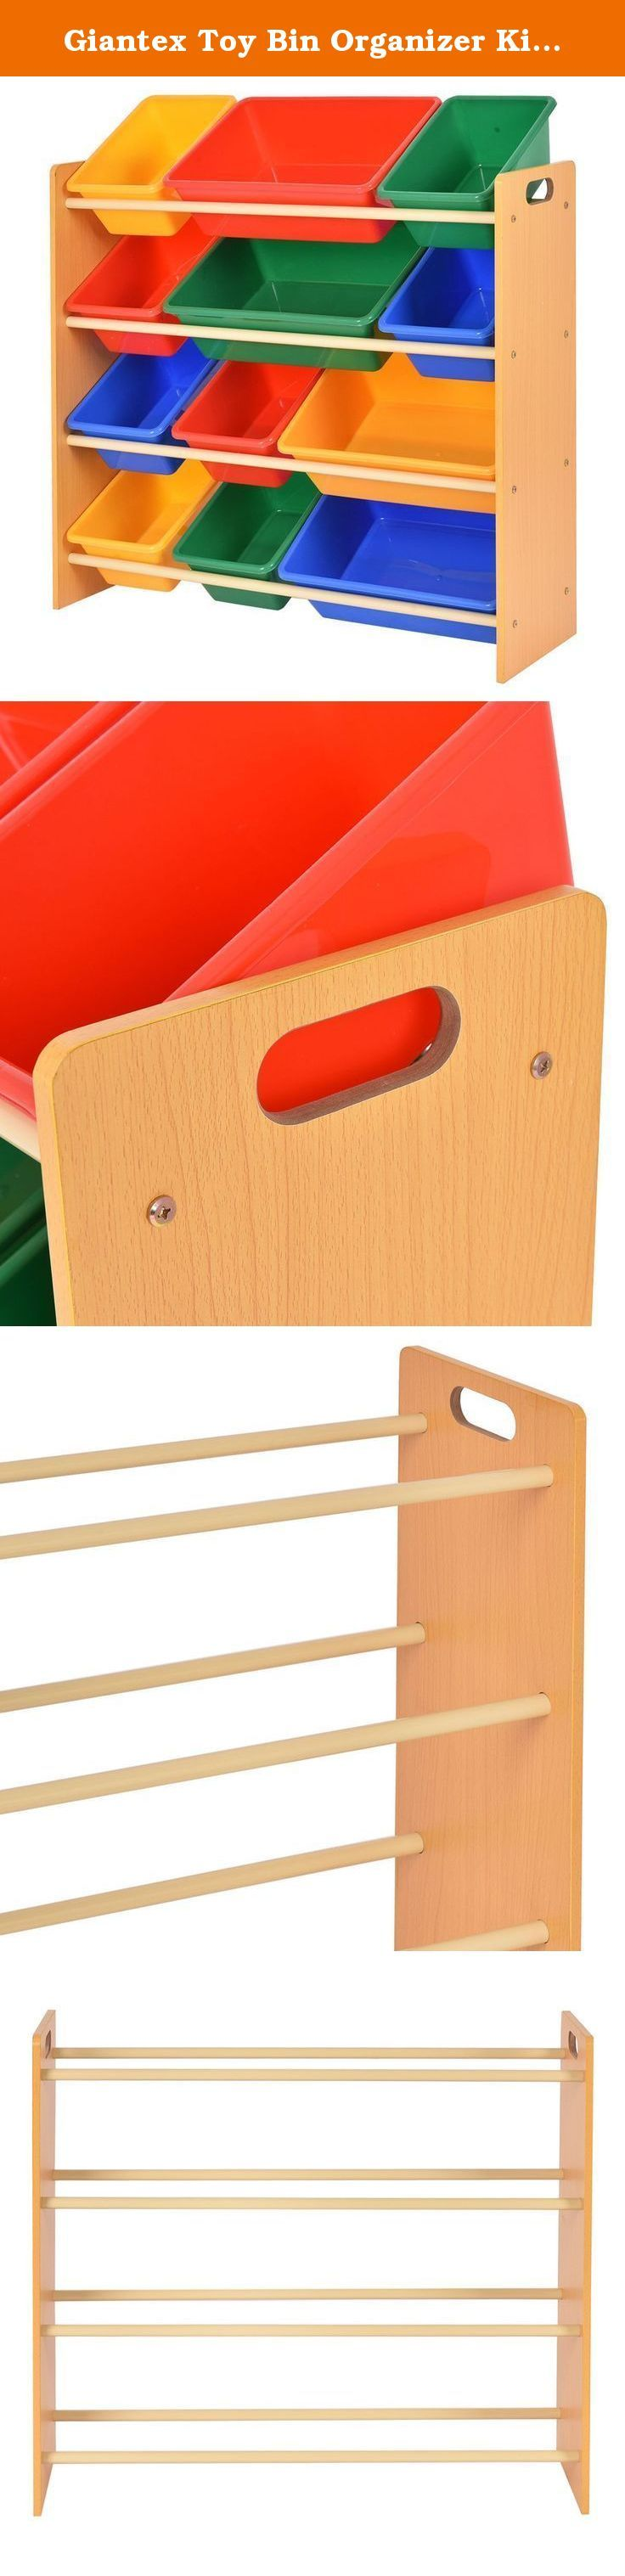 Giantex Toy Bin Organizer Kids Childrens Storage Box Playroom Bedroom Shelf Drawer. Babys Is Always Throw Toys, Building Blocks Or Toy Cars Everywhere.This Is OurToy Bin Organizer,Which Will Be A Great Solution For Keeping Your Kids Toys Organised. It Is Made Of Wood And Comes With Removable Colorful Bins.